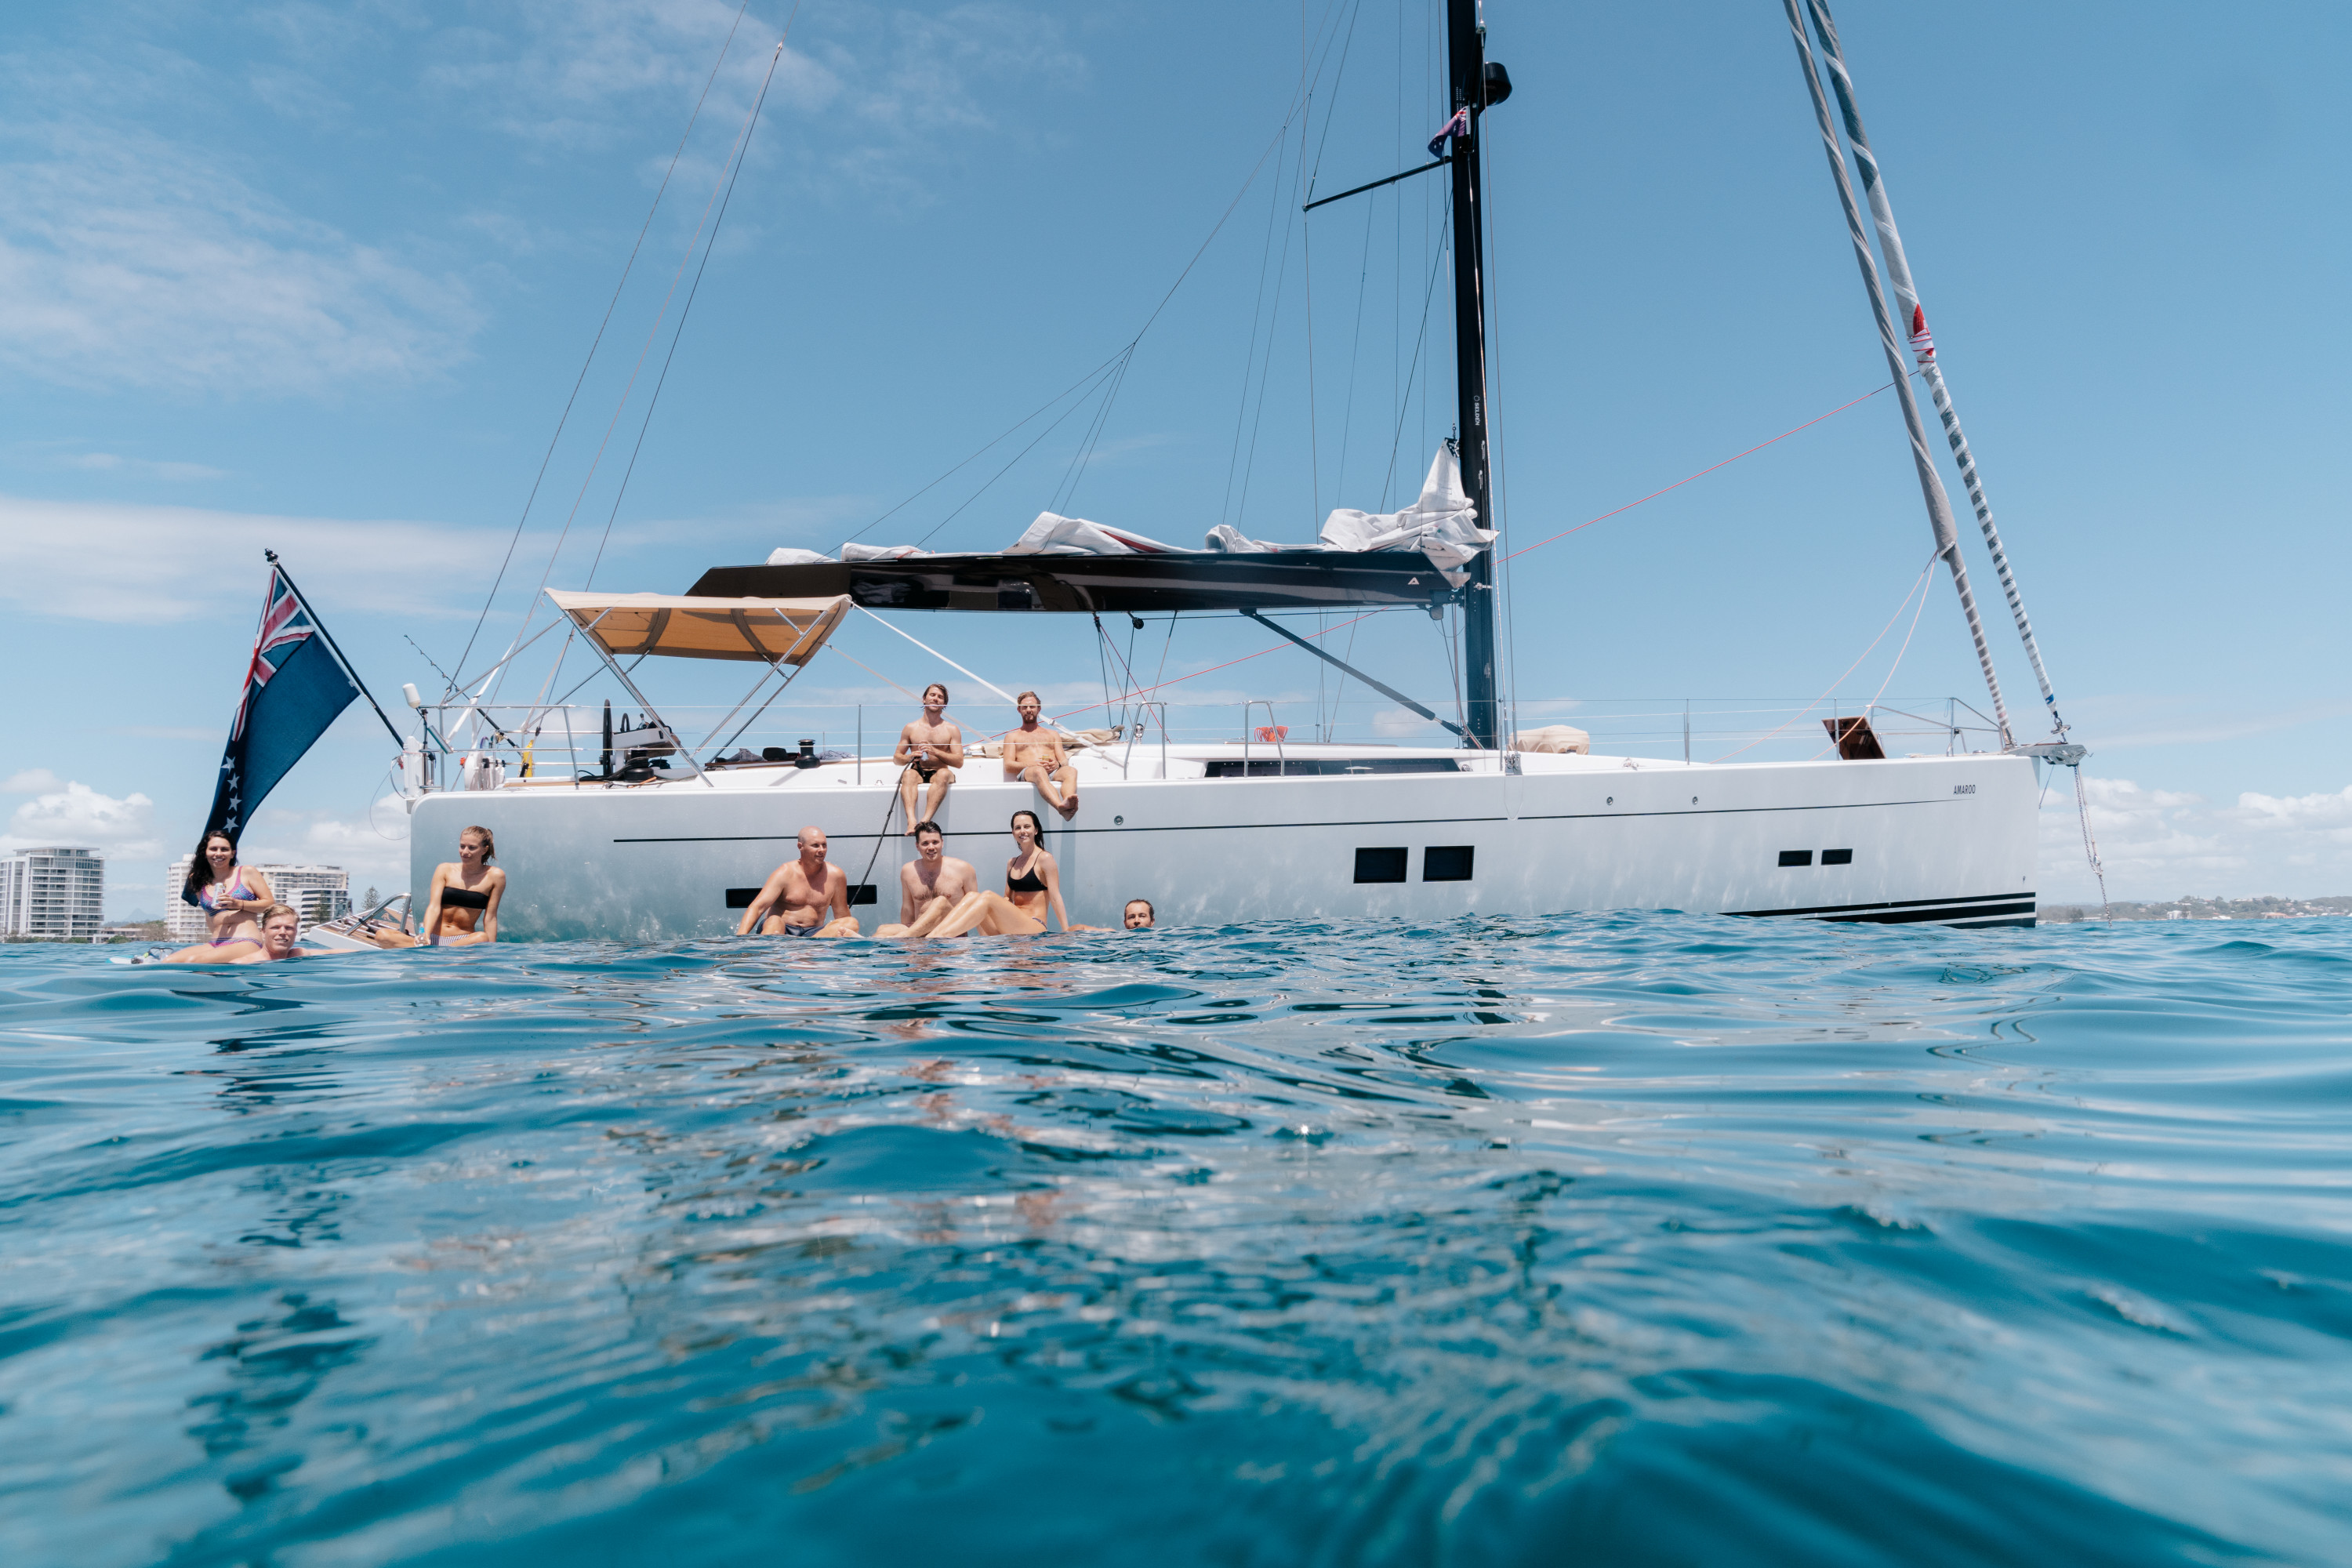 a group of people sitting on a yacht